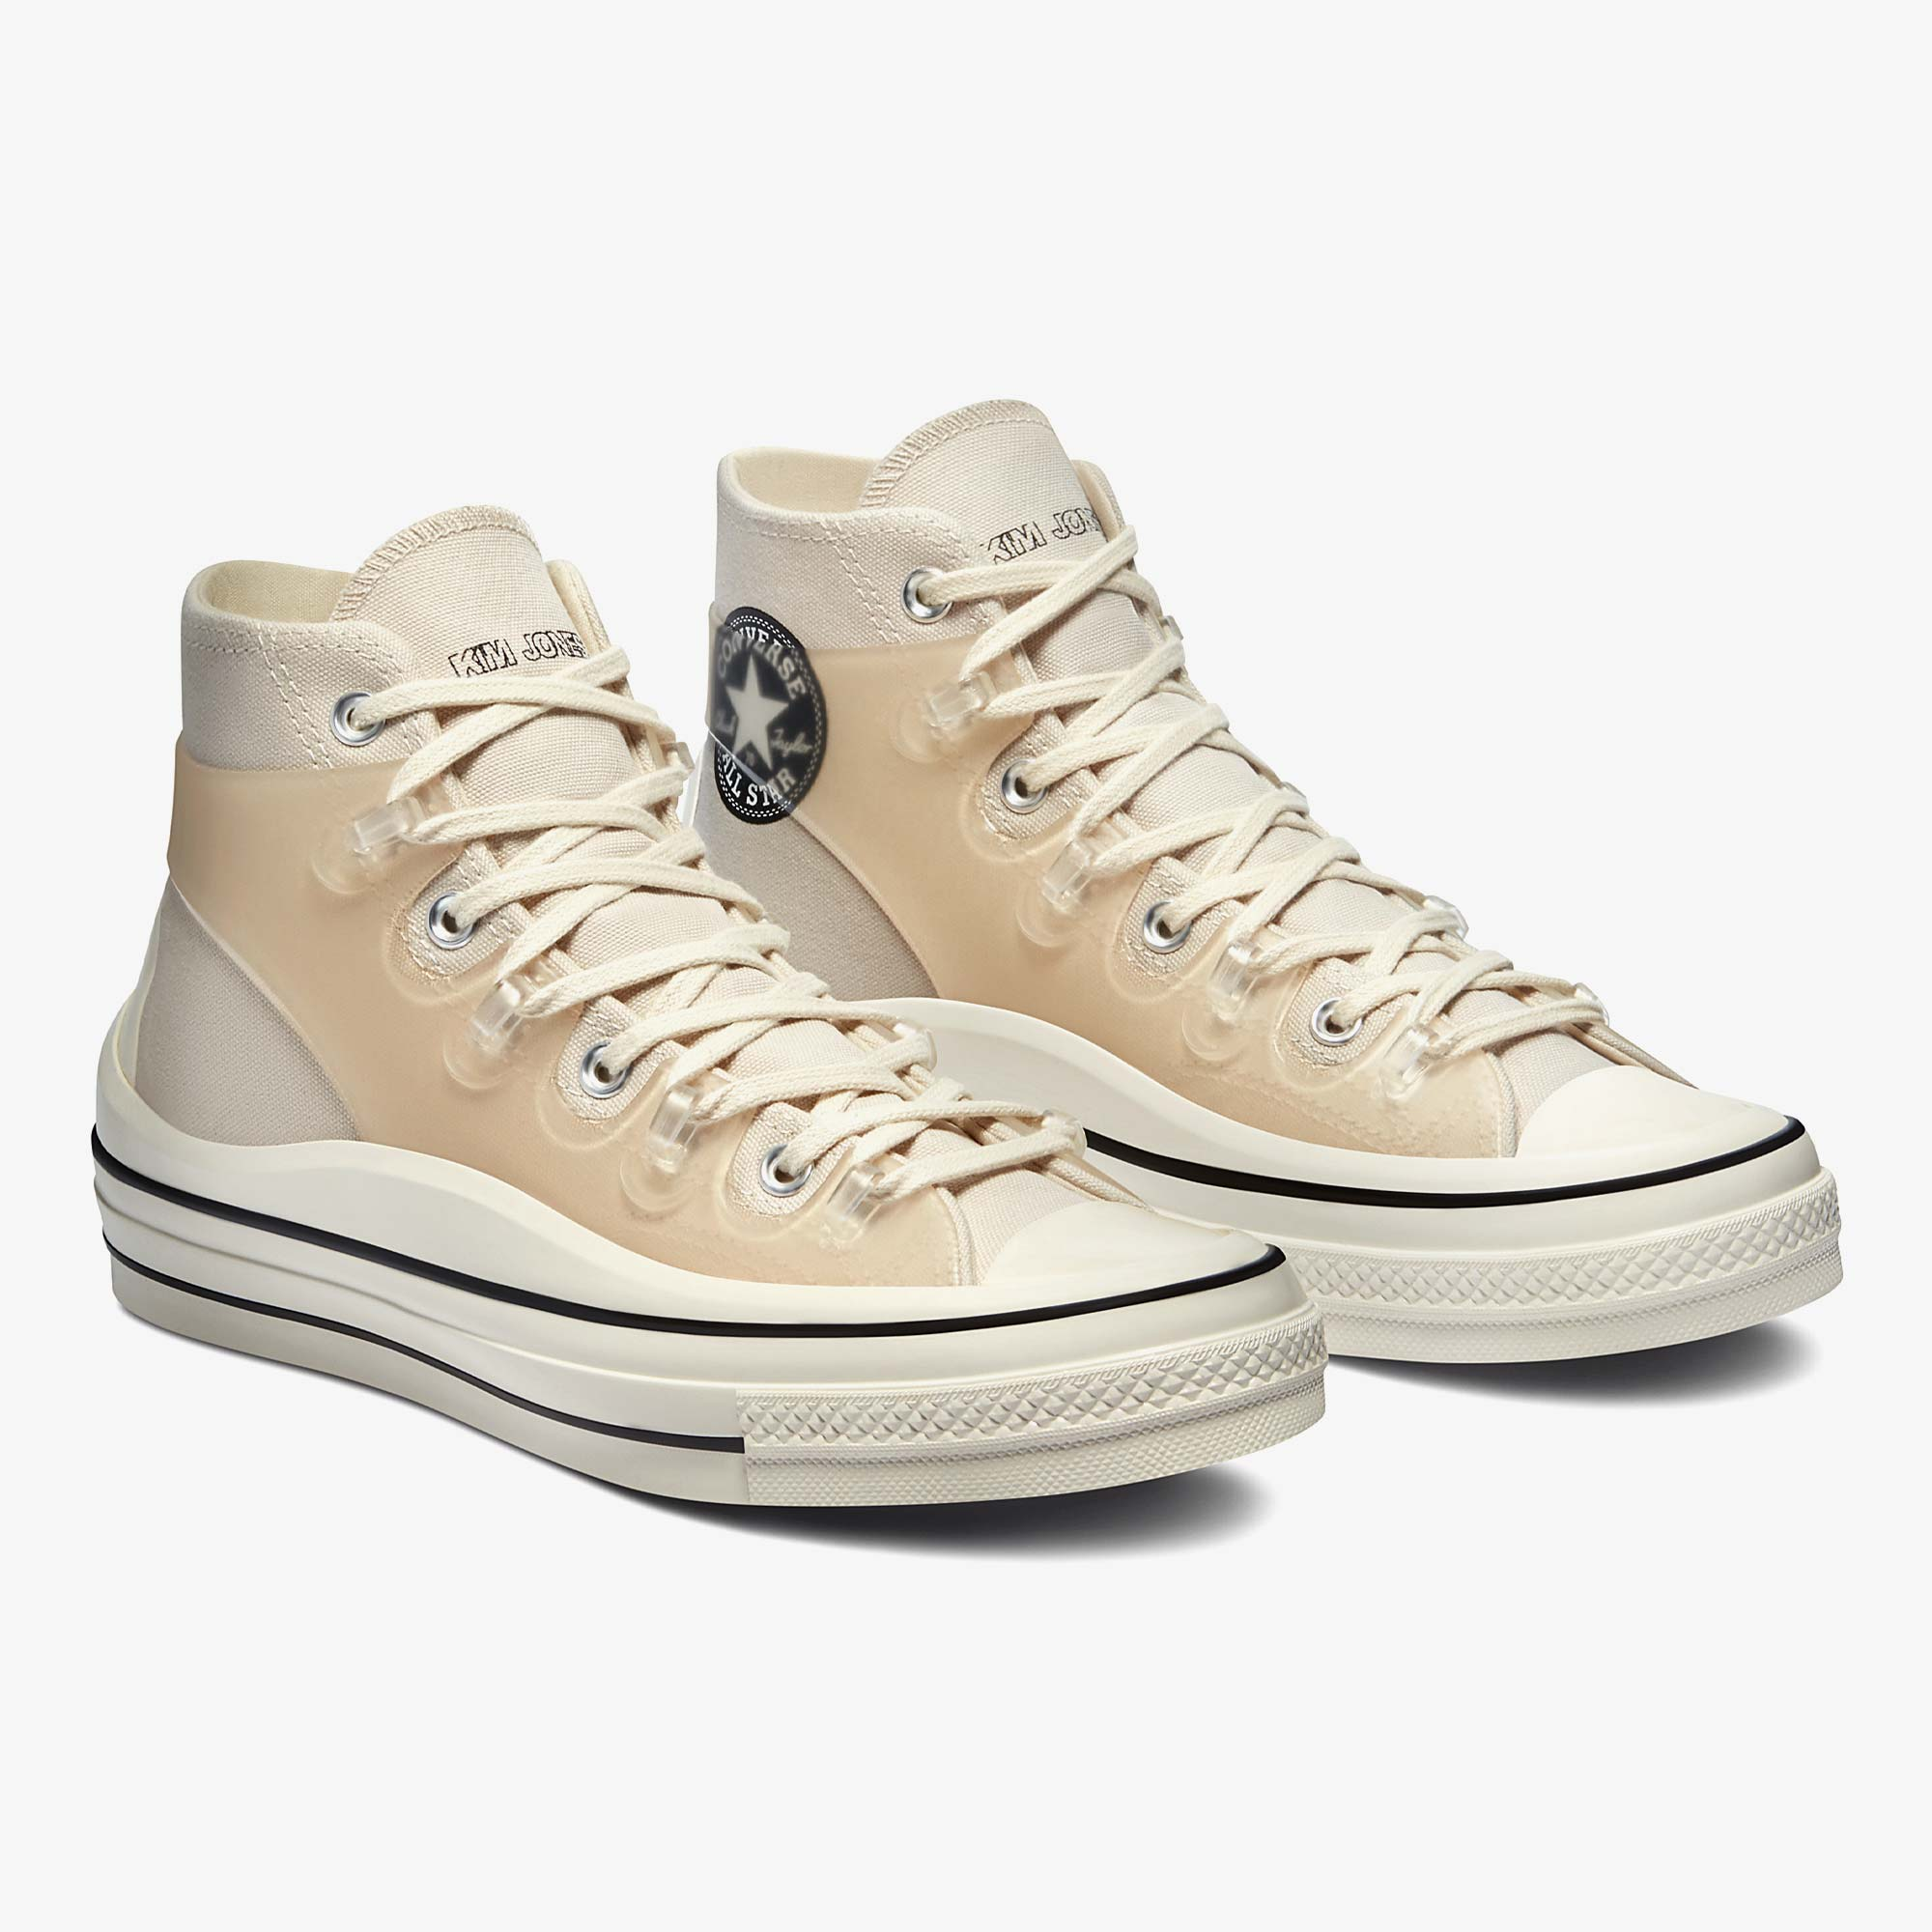 Converse x Kim Jones Chuck 70 Utility Wave Hi - White 1